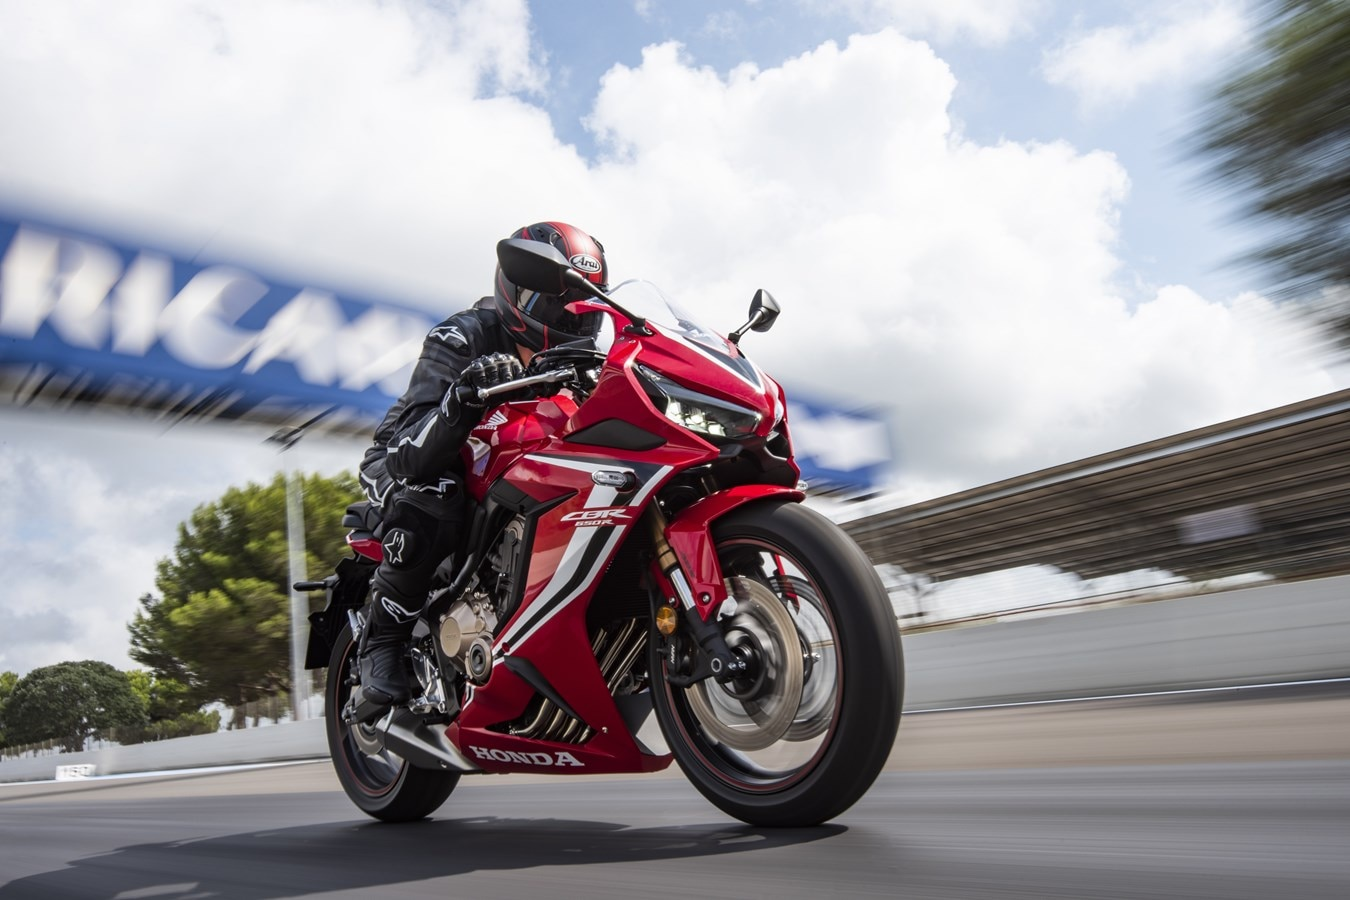 Honda CBR650R Likely To Be Launched In India